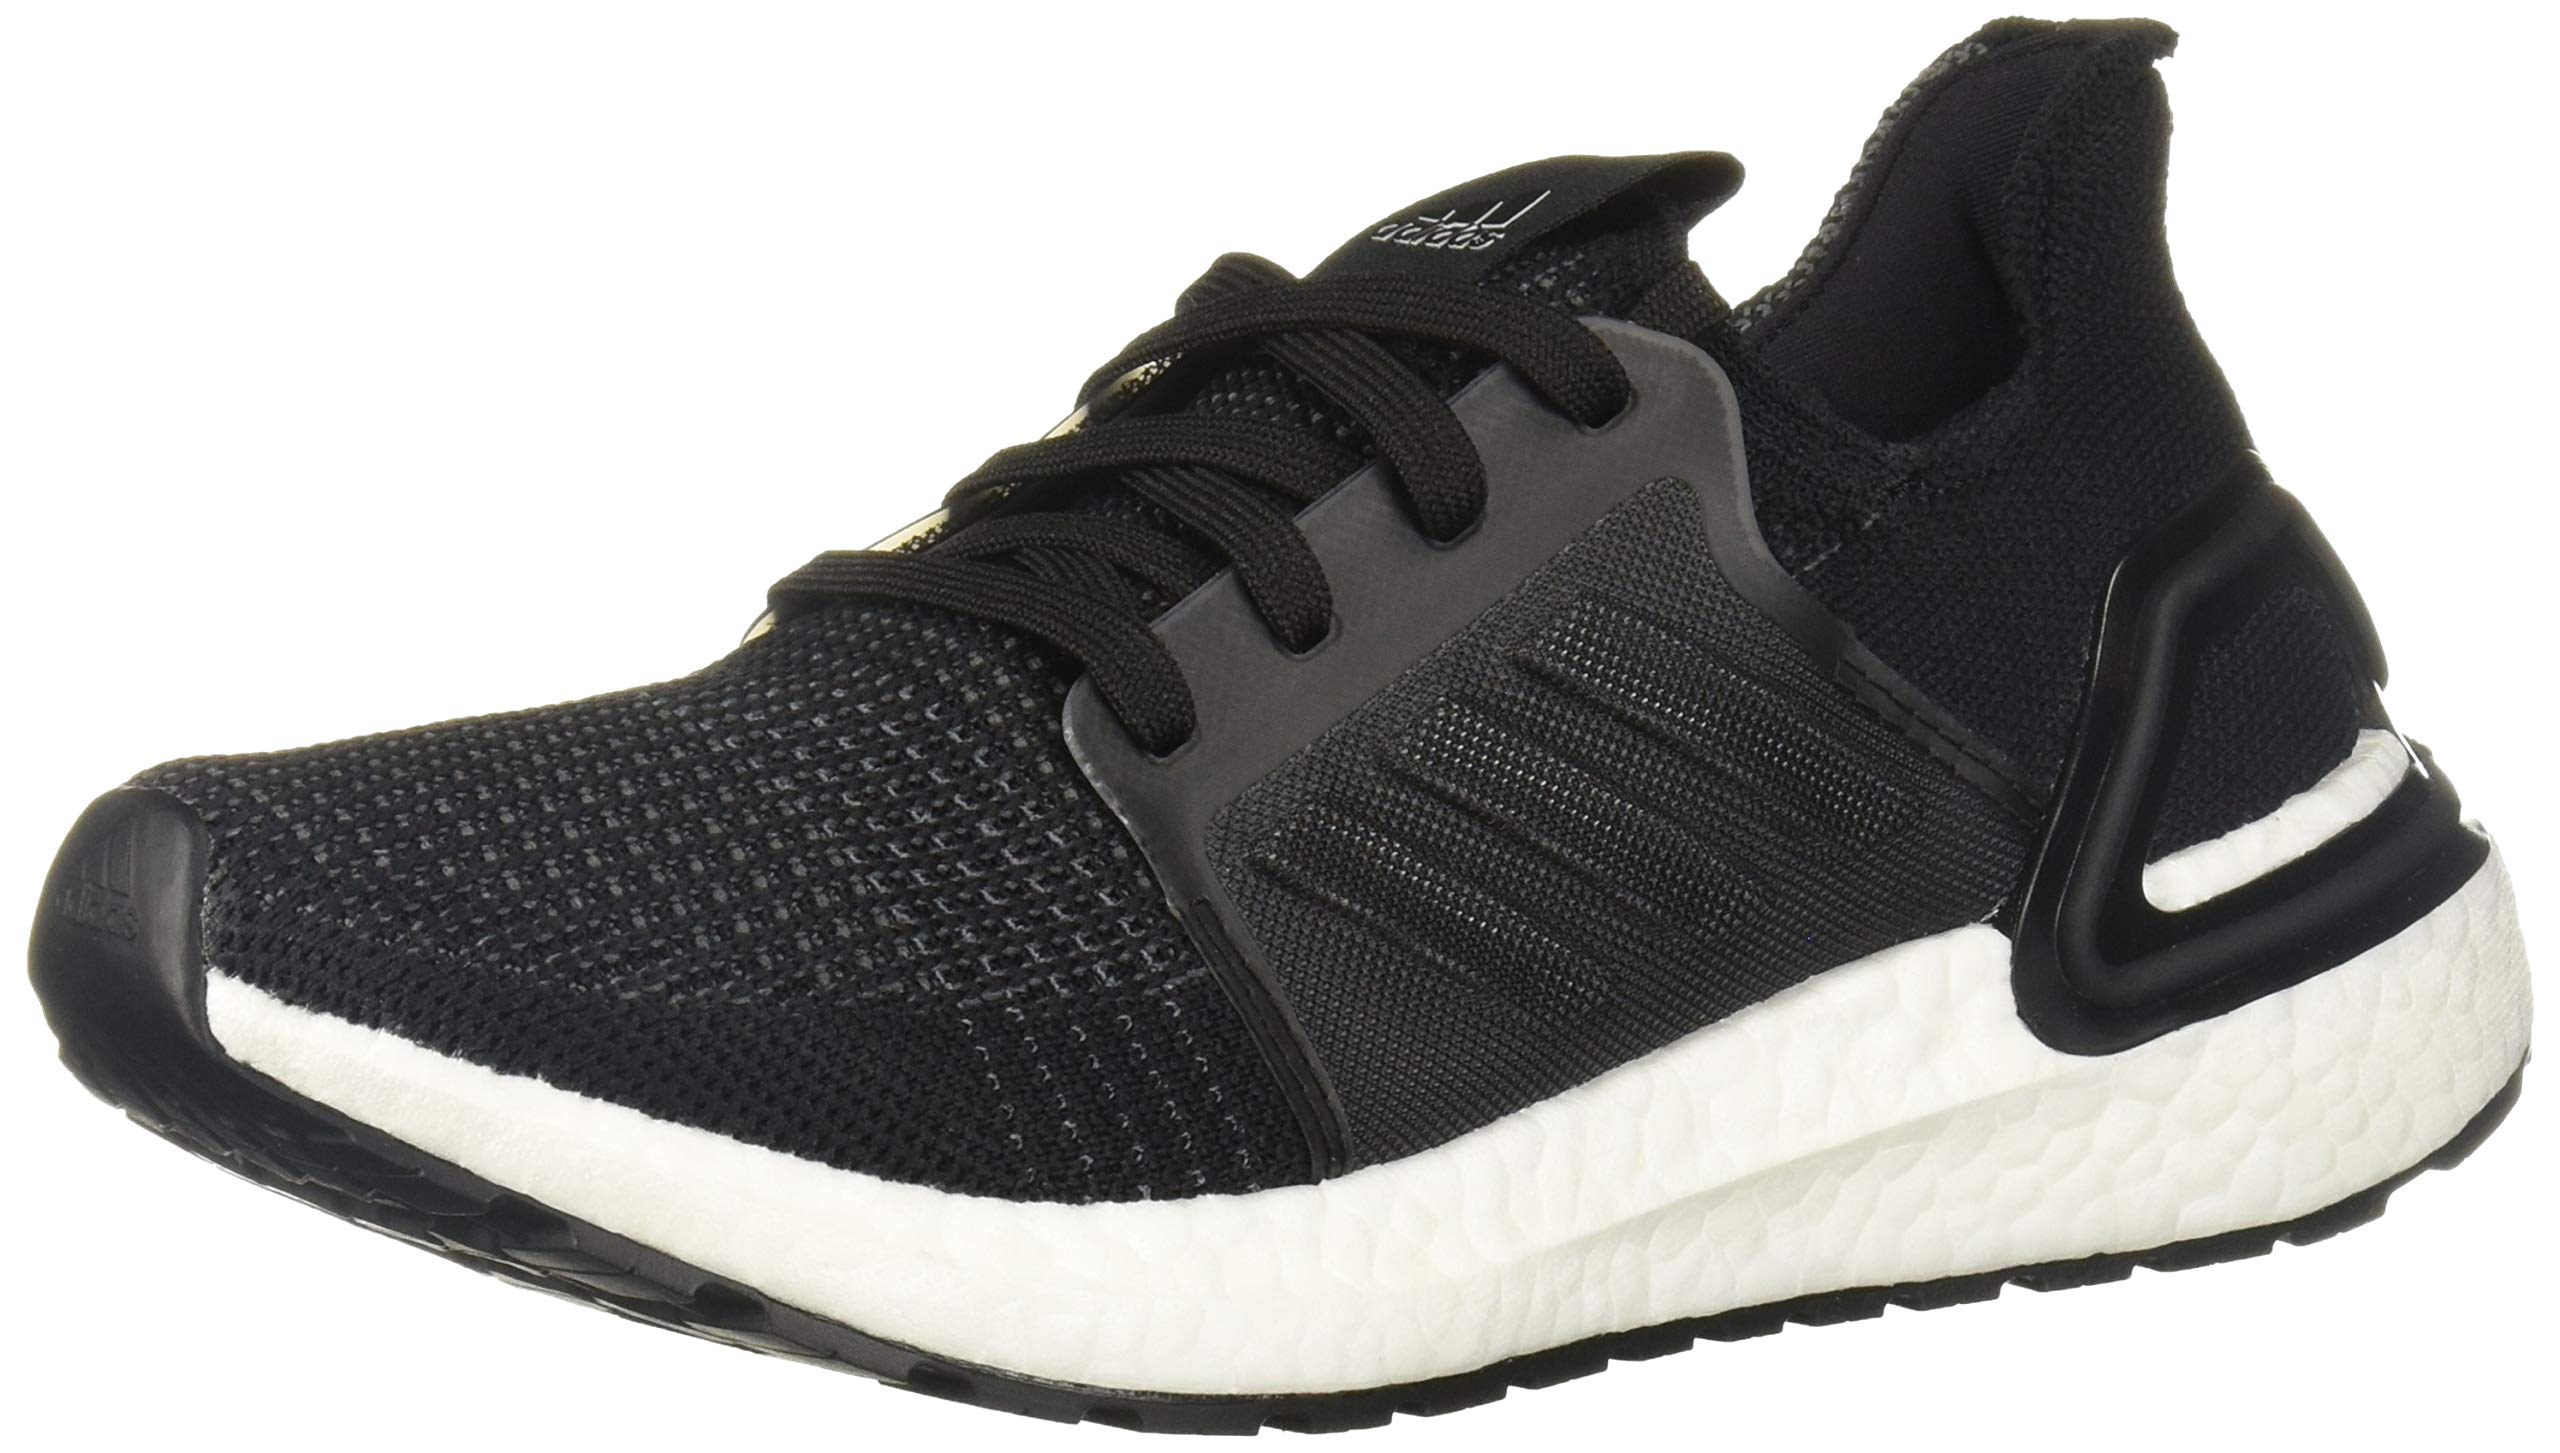 adidas Unisex Ultraboost 19 Running Shoe, Black/Grey, 4.5 M US Big Kid by adidas